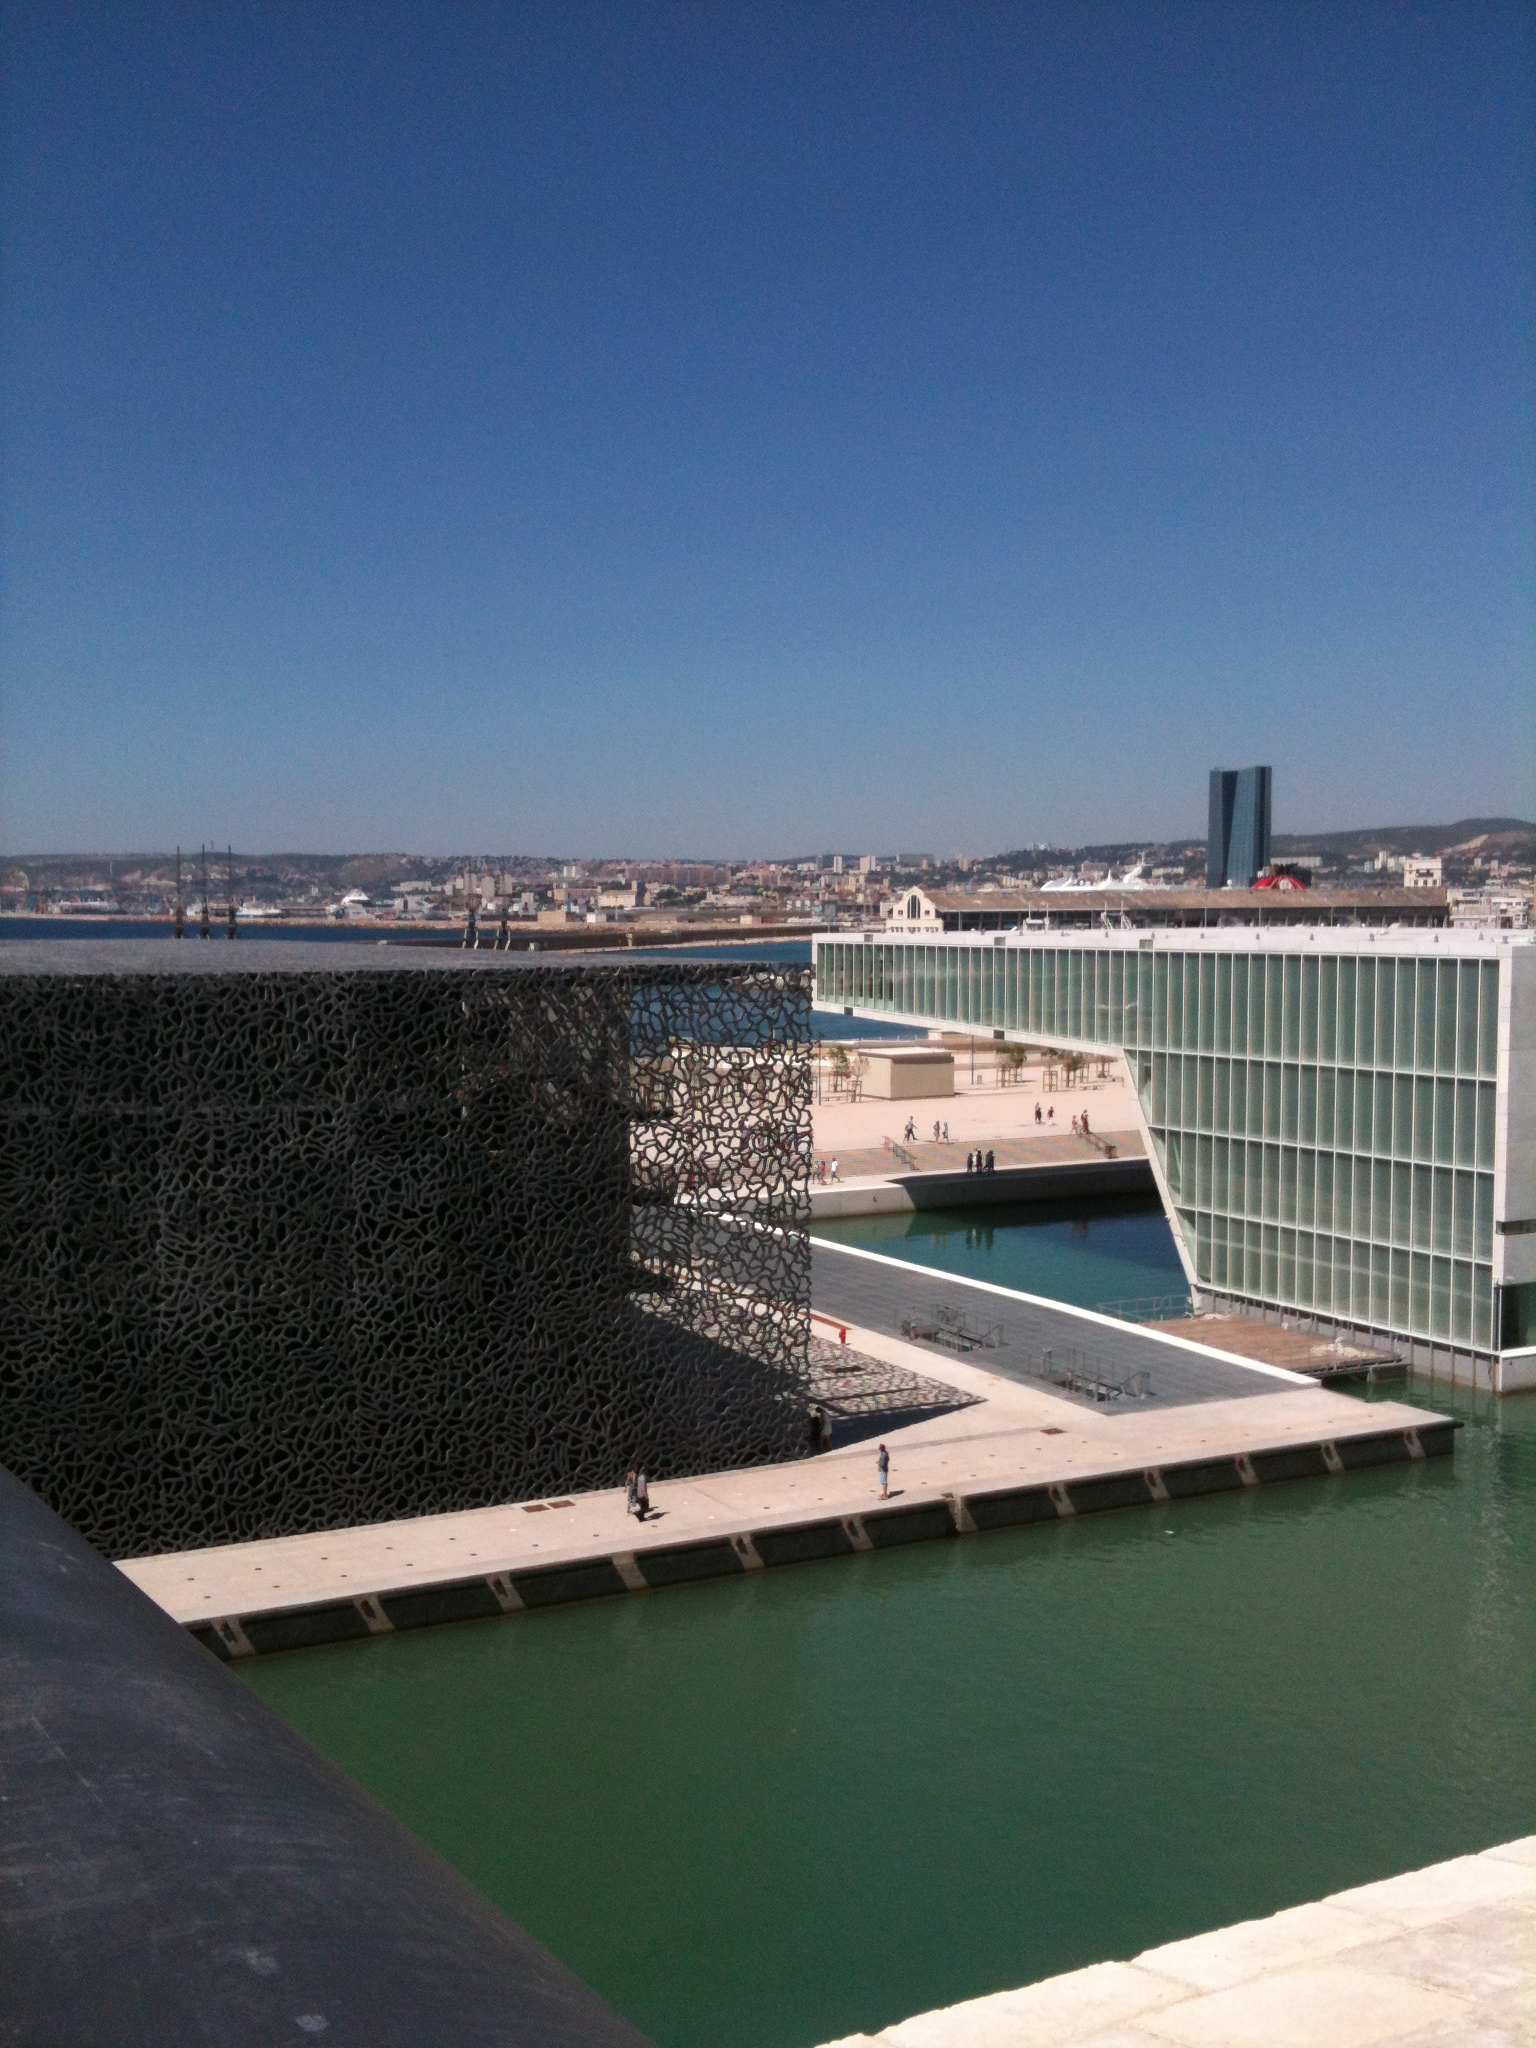 Recent constructions in marseille in the middle of old monulent with bridge linking them. Fabulous !